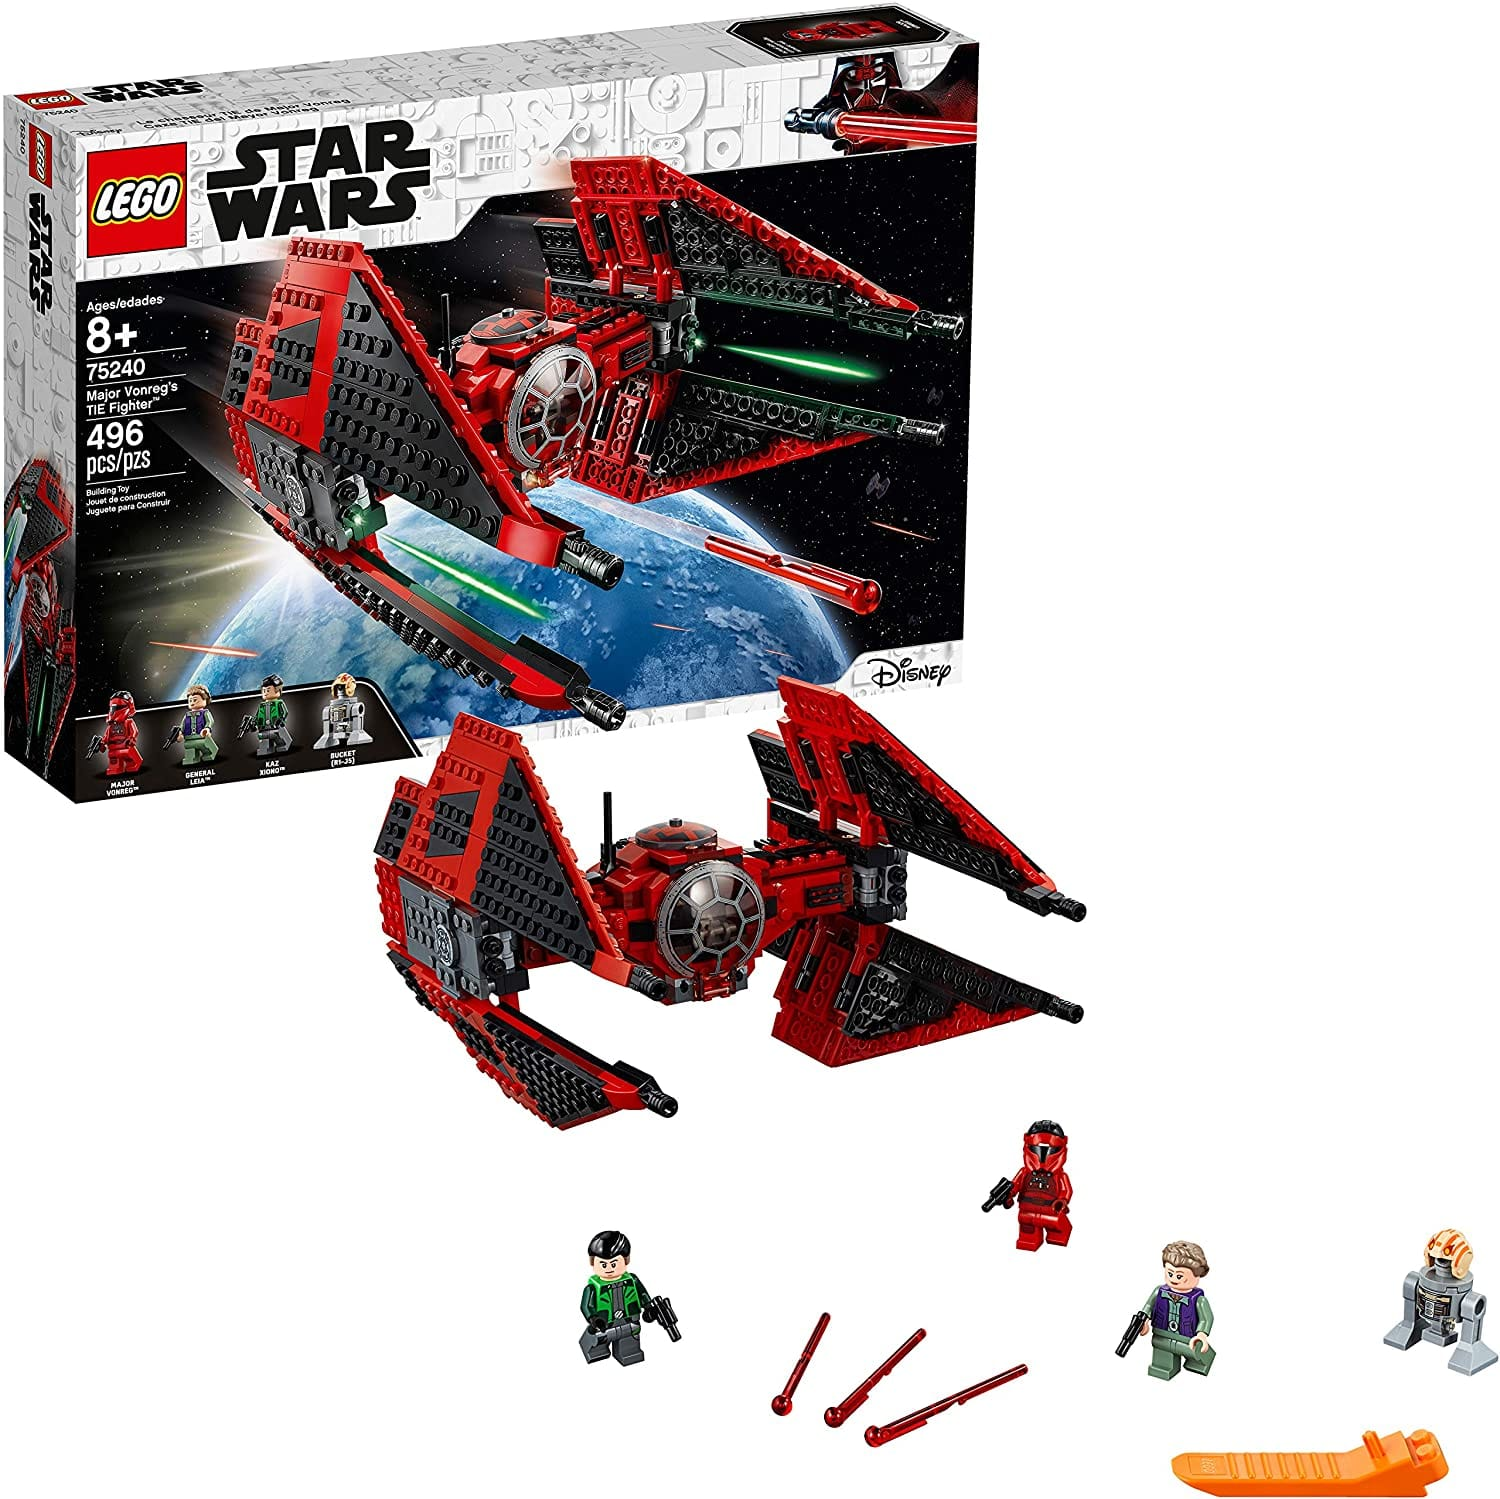 496-Piece LEGO Star Wars Major Vonreg's TIE Fighter (75240) $51.80 + Free Shipping